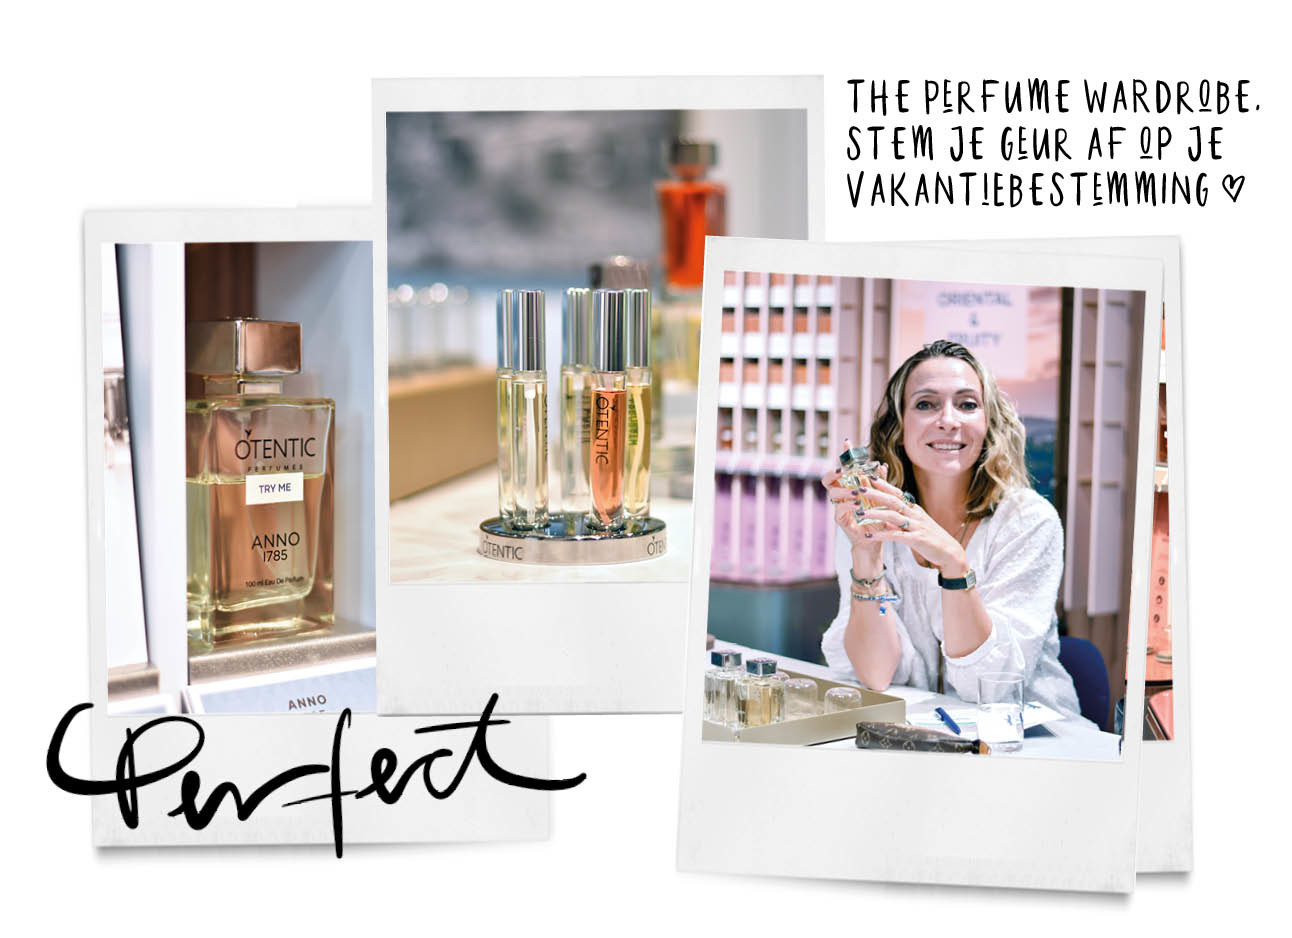 may bij otentic parfum